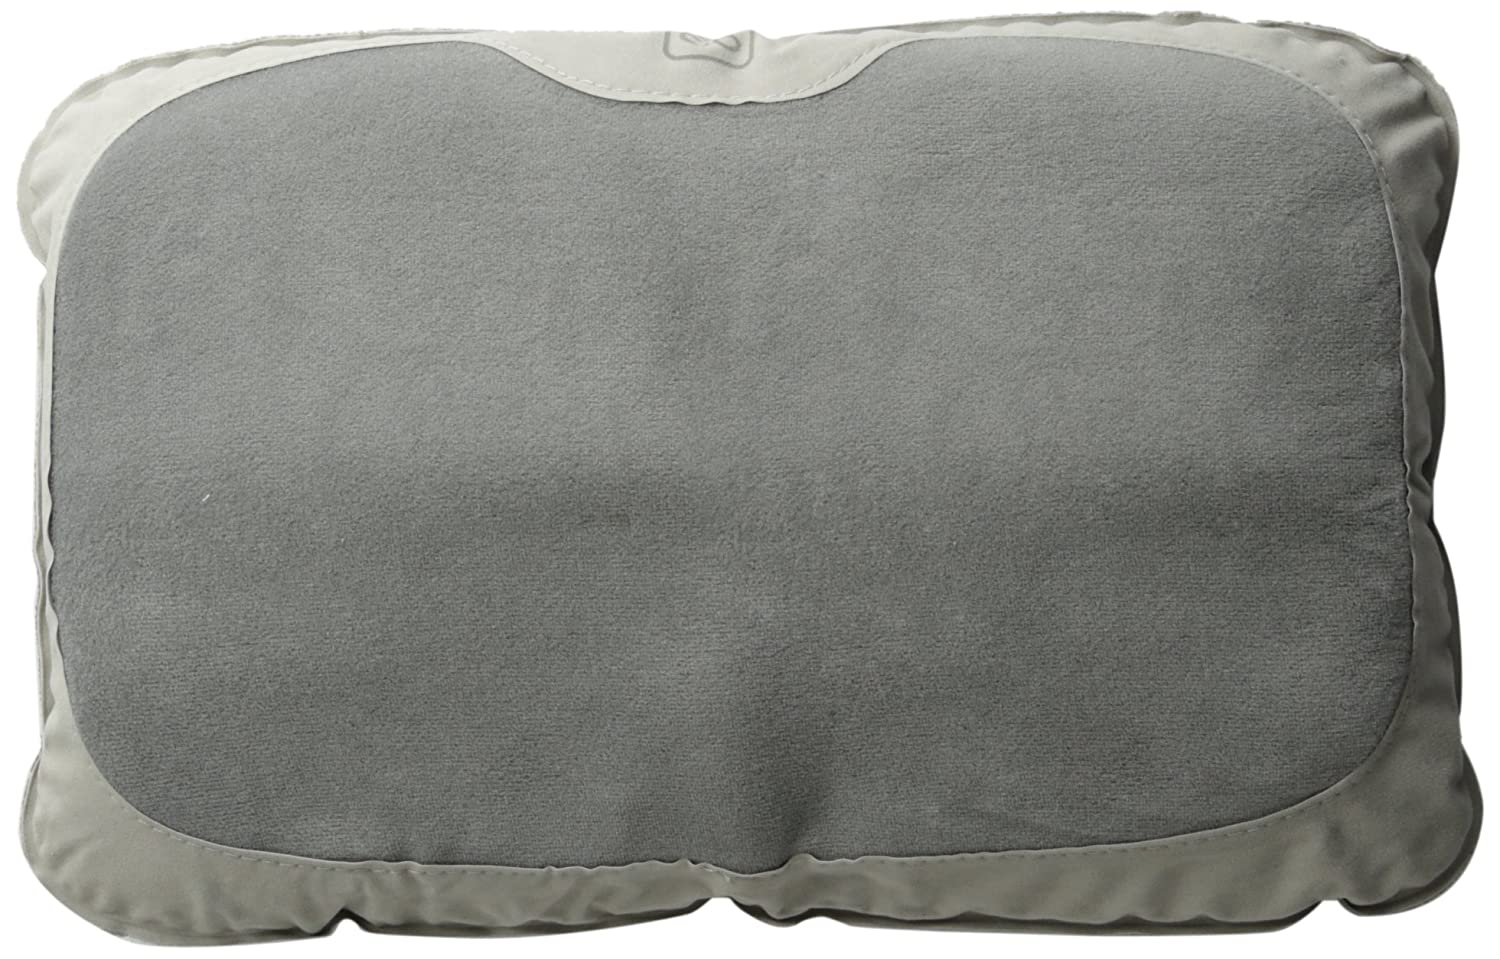 Go Travel Lumbar Support, Gray, One Size 451